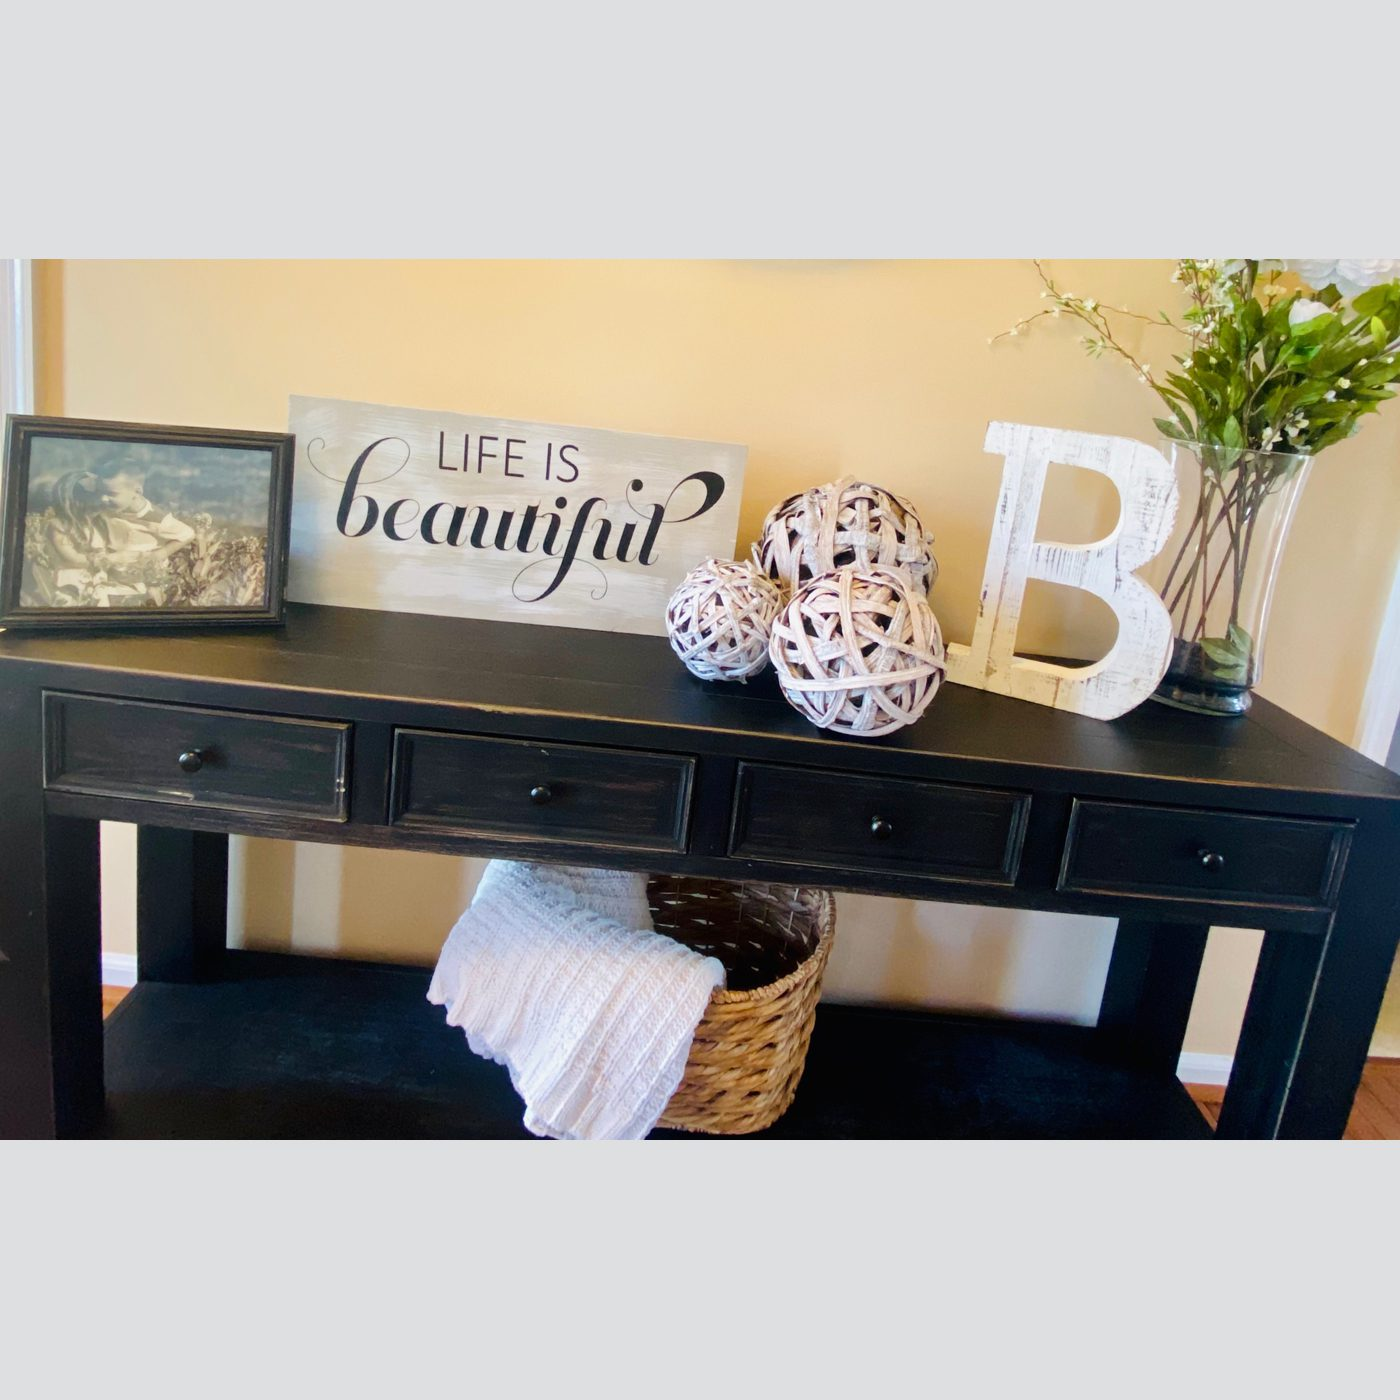 Life is Beautiful DIY wood sign project